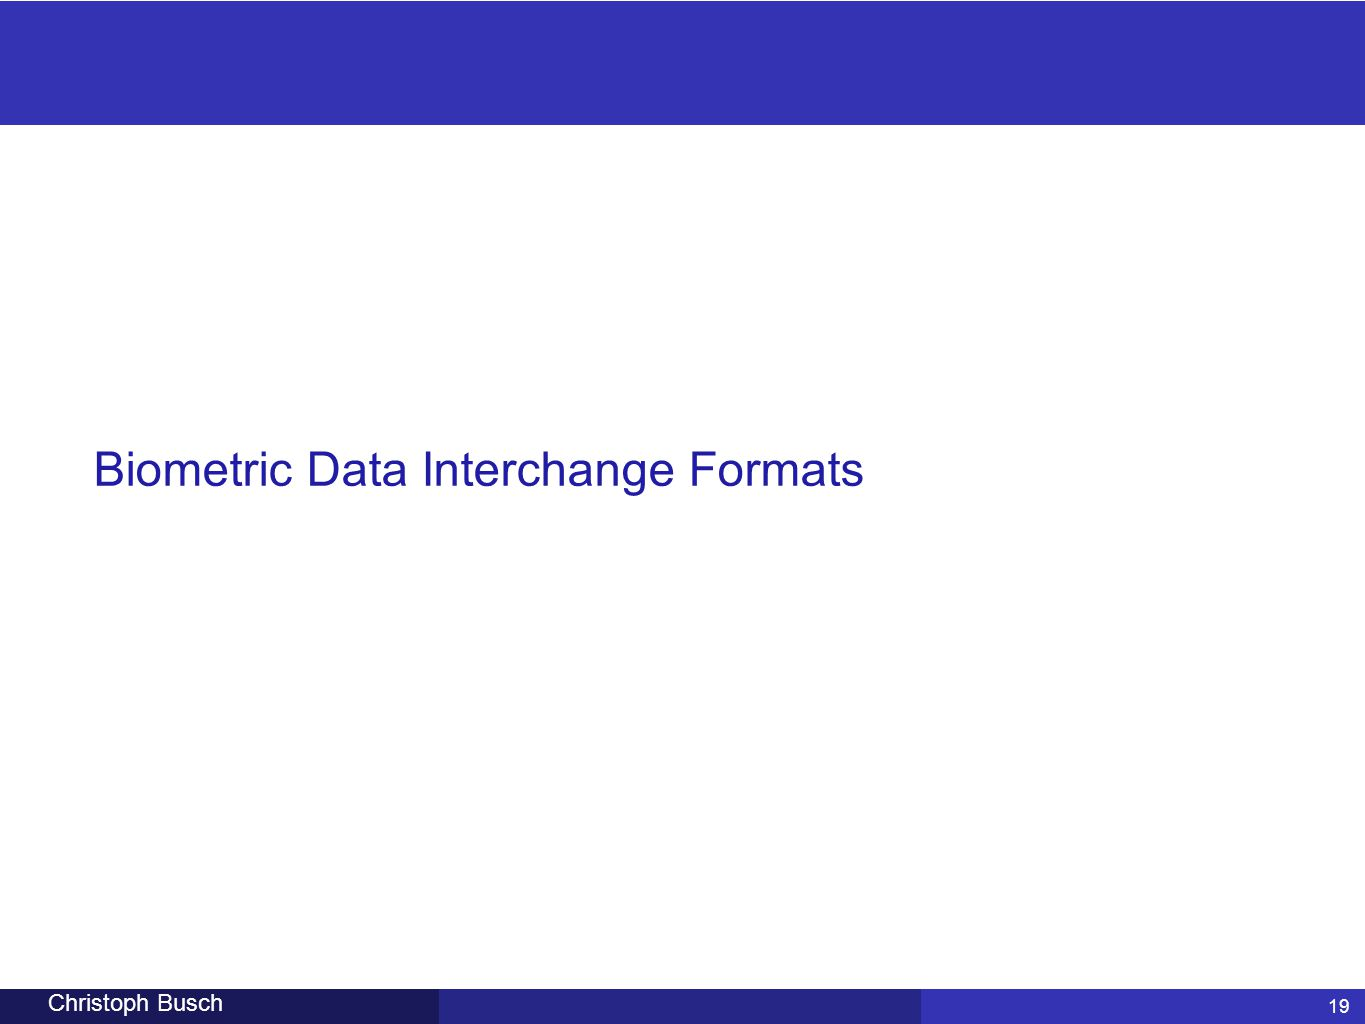 Biometric Data Interchange Formats